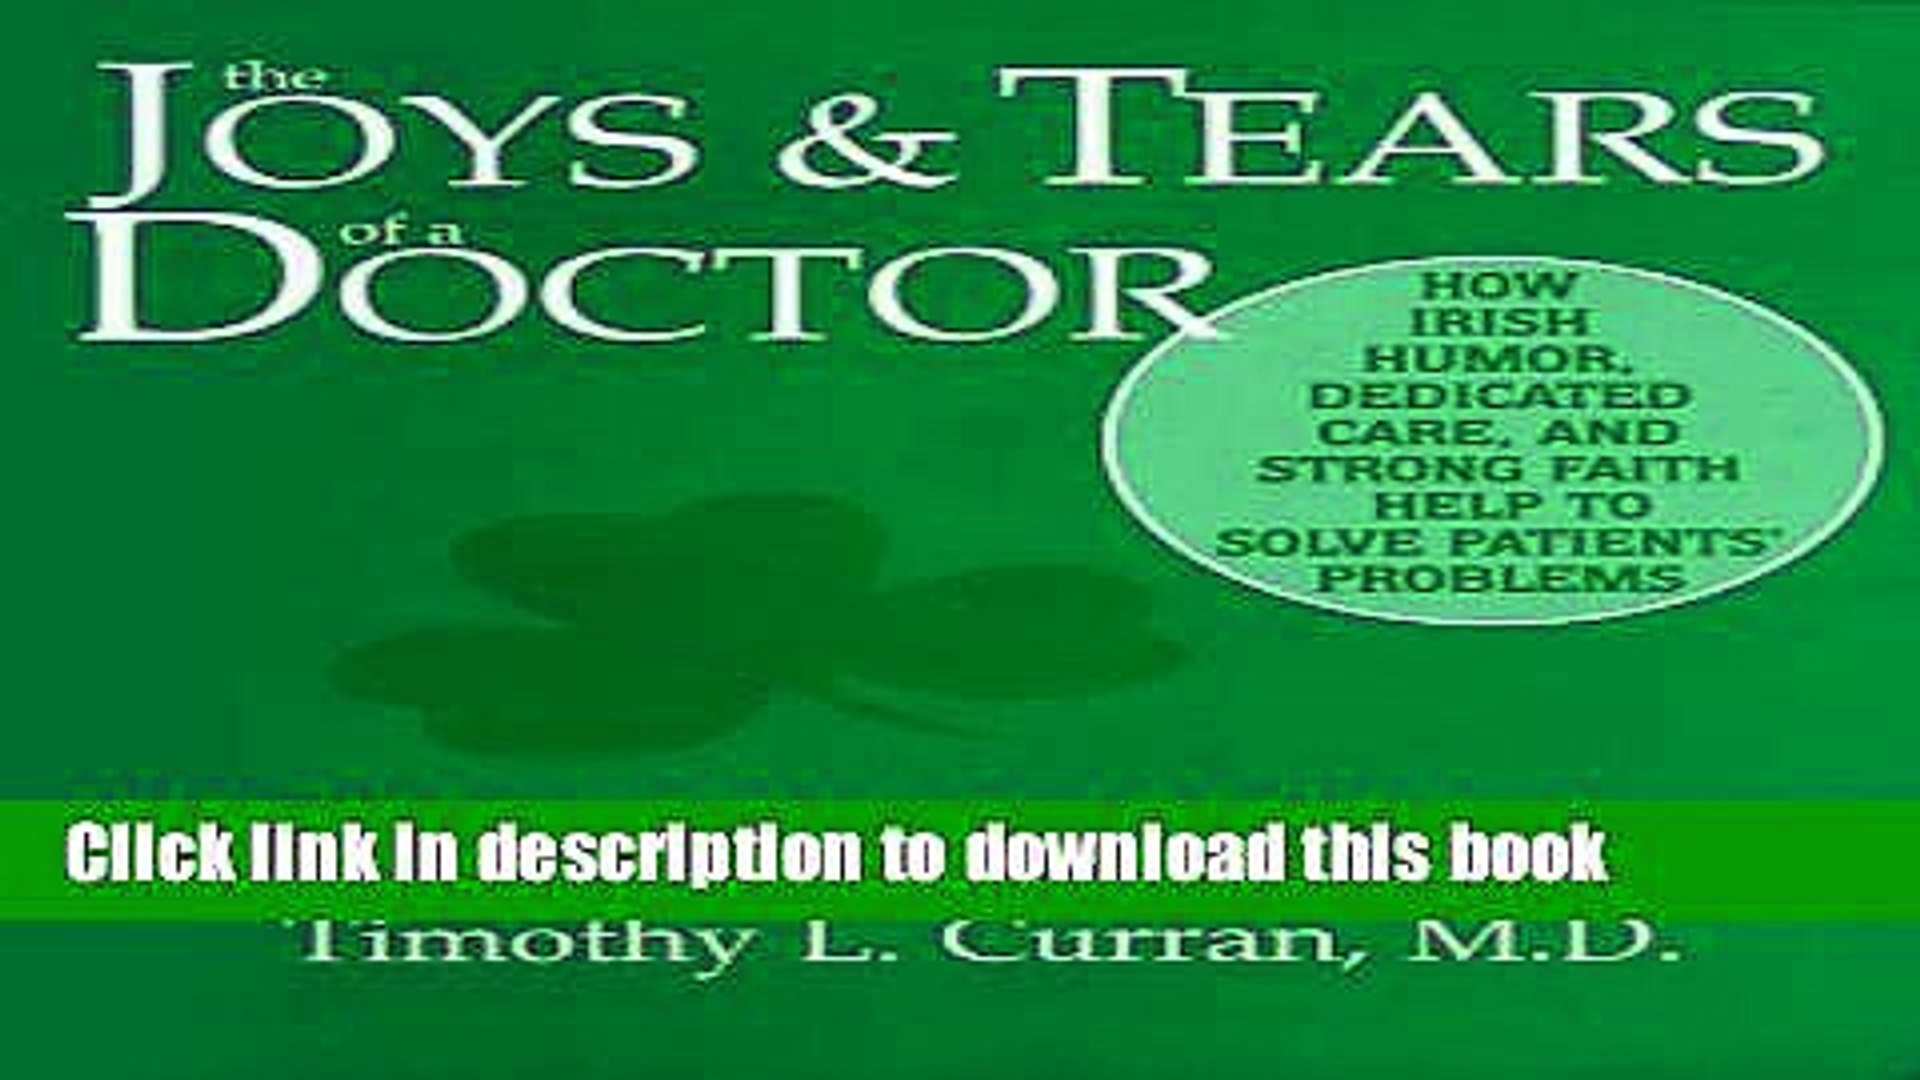 Read The Joys and Tears of a Doctor: How Irish Humor, Dedicated Care and Strong Faith Help to